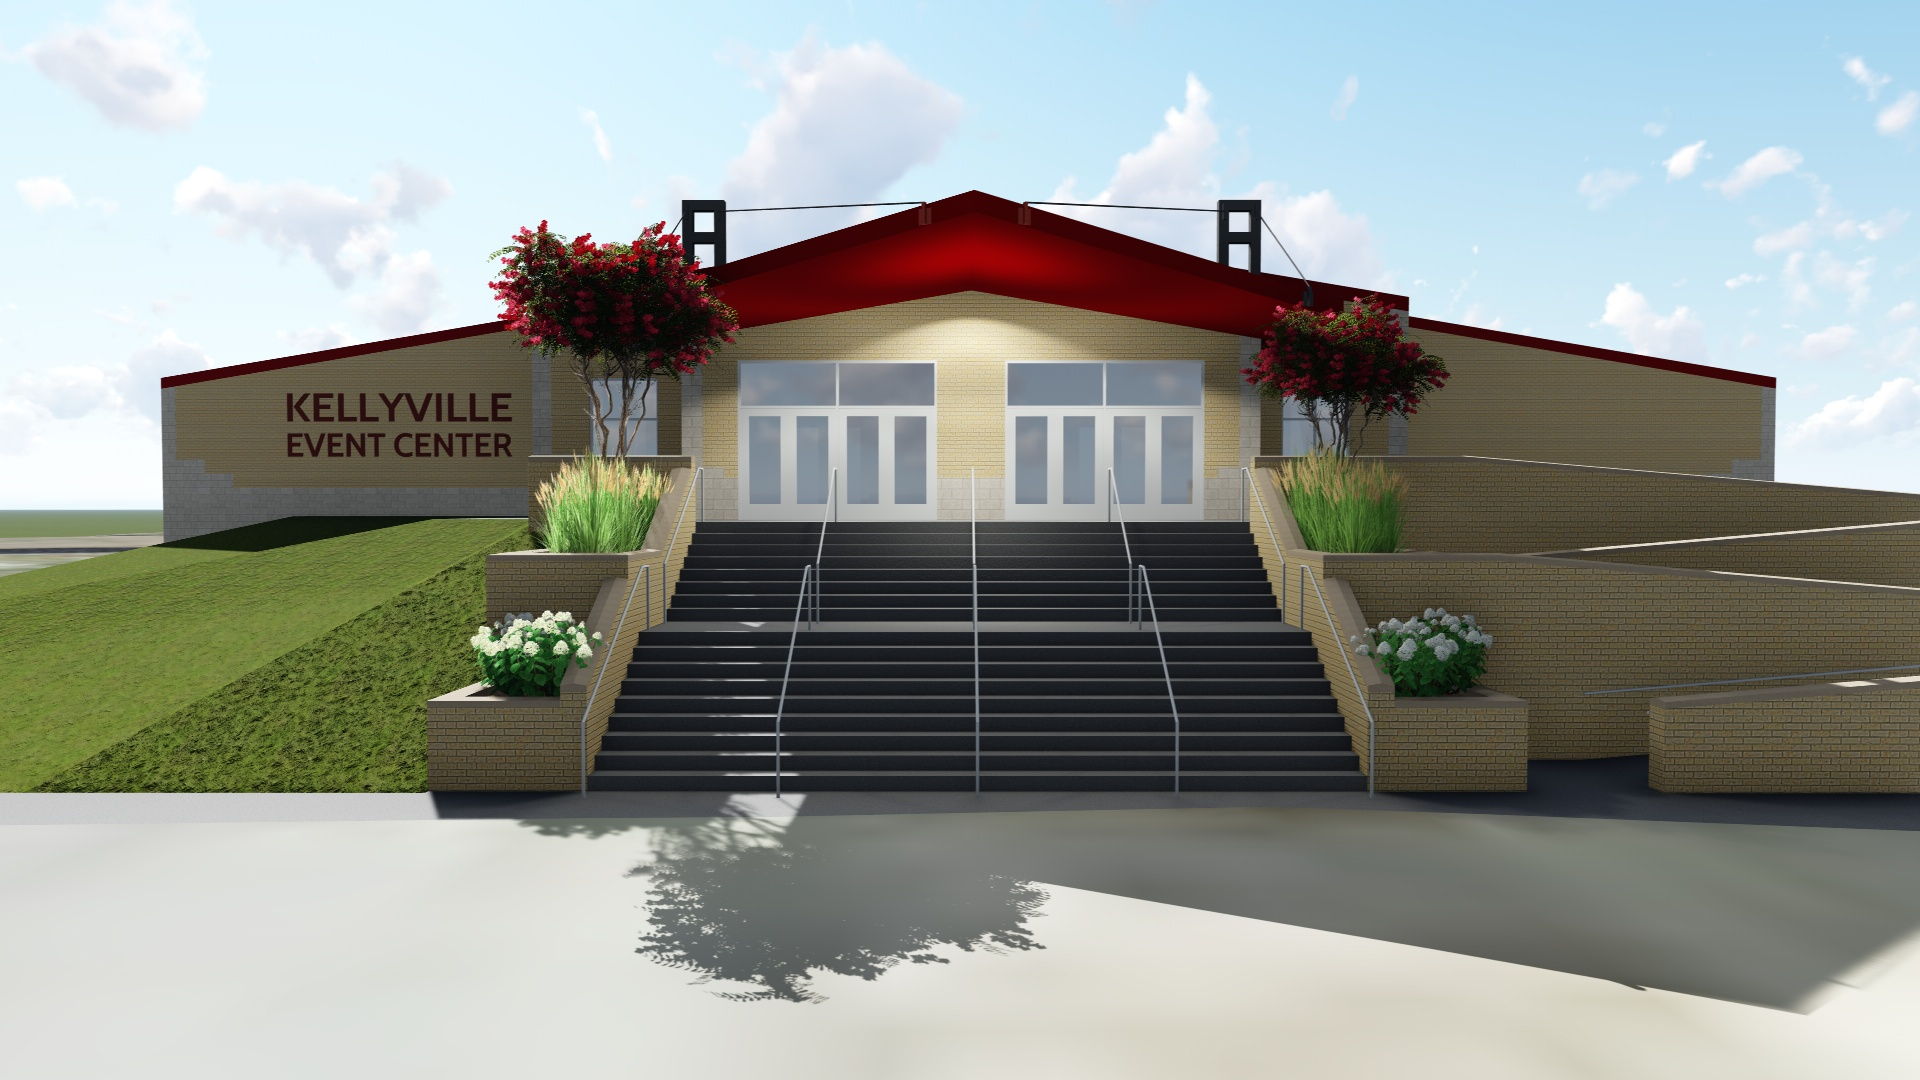 Kellyville Event Center